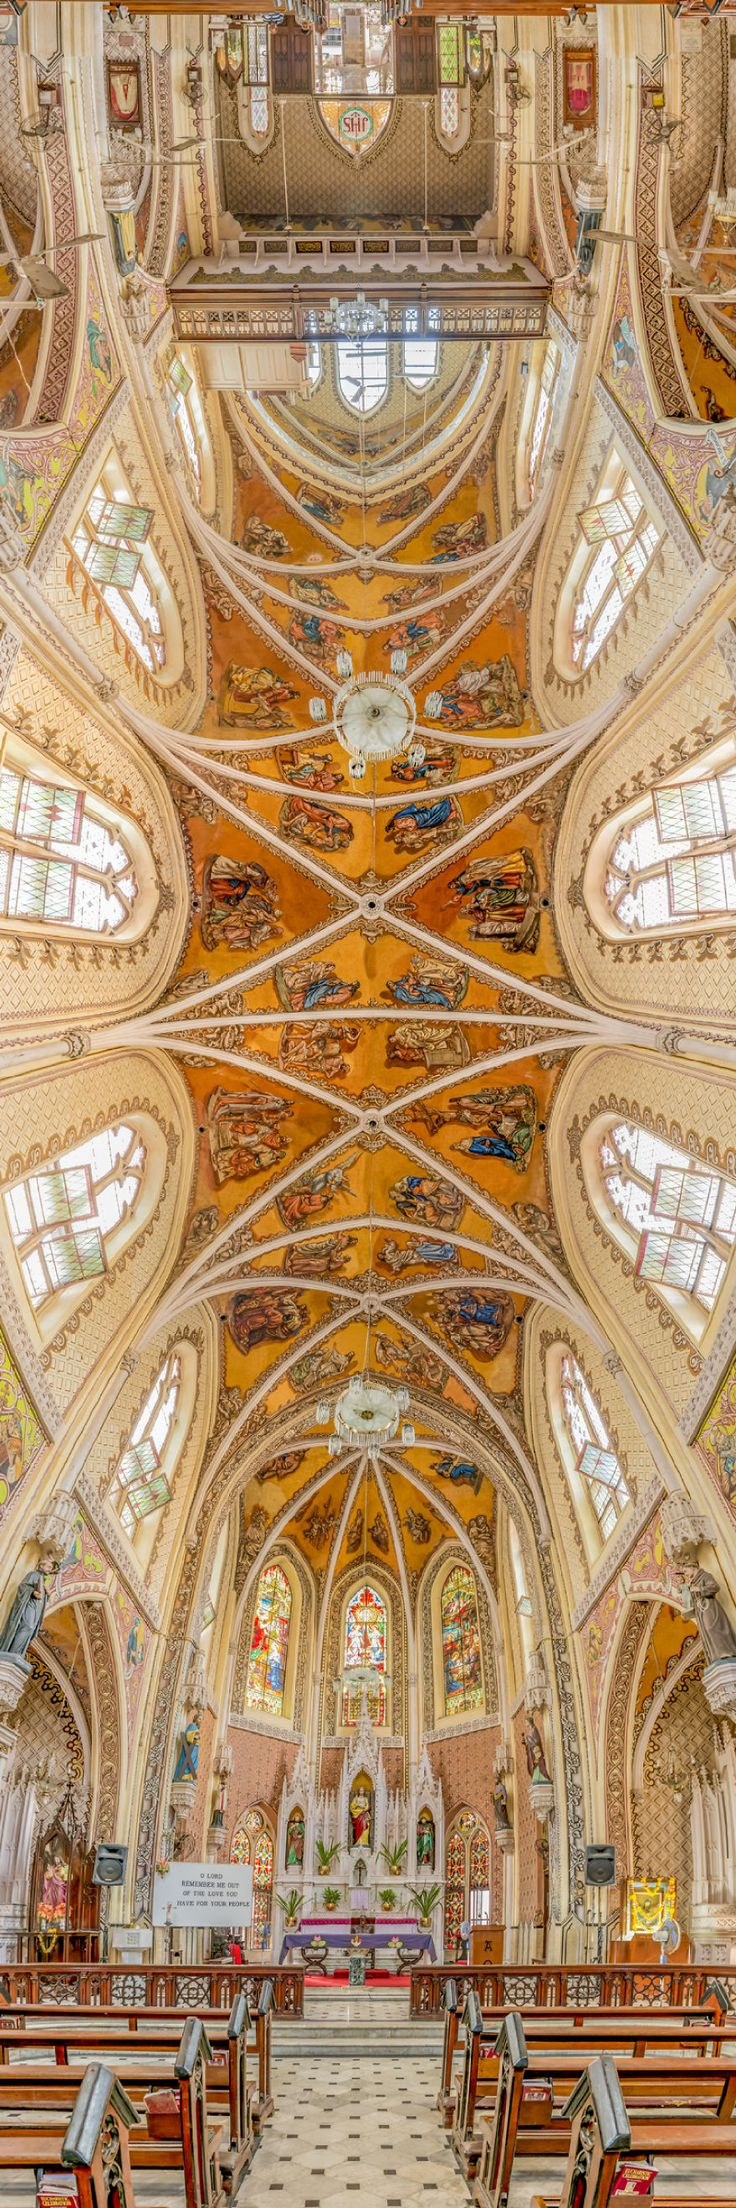 Vertical Churches: I Photograph Churches Around The World From The Perfect Perspective | Bored Panda